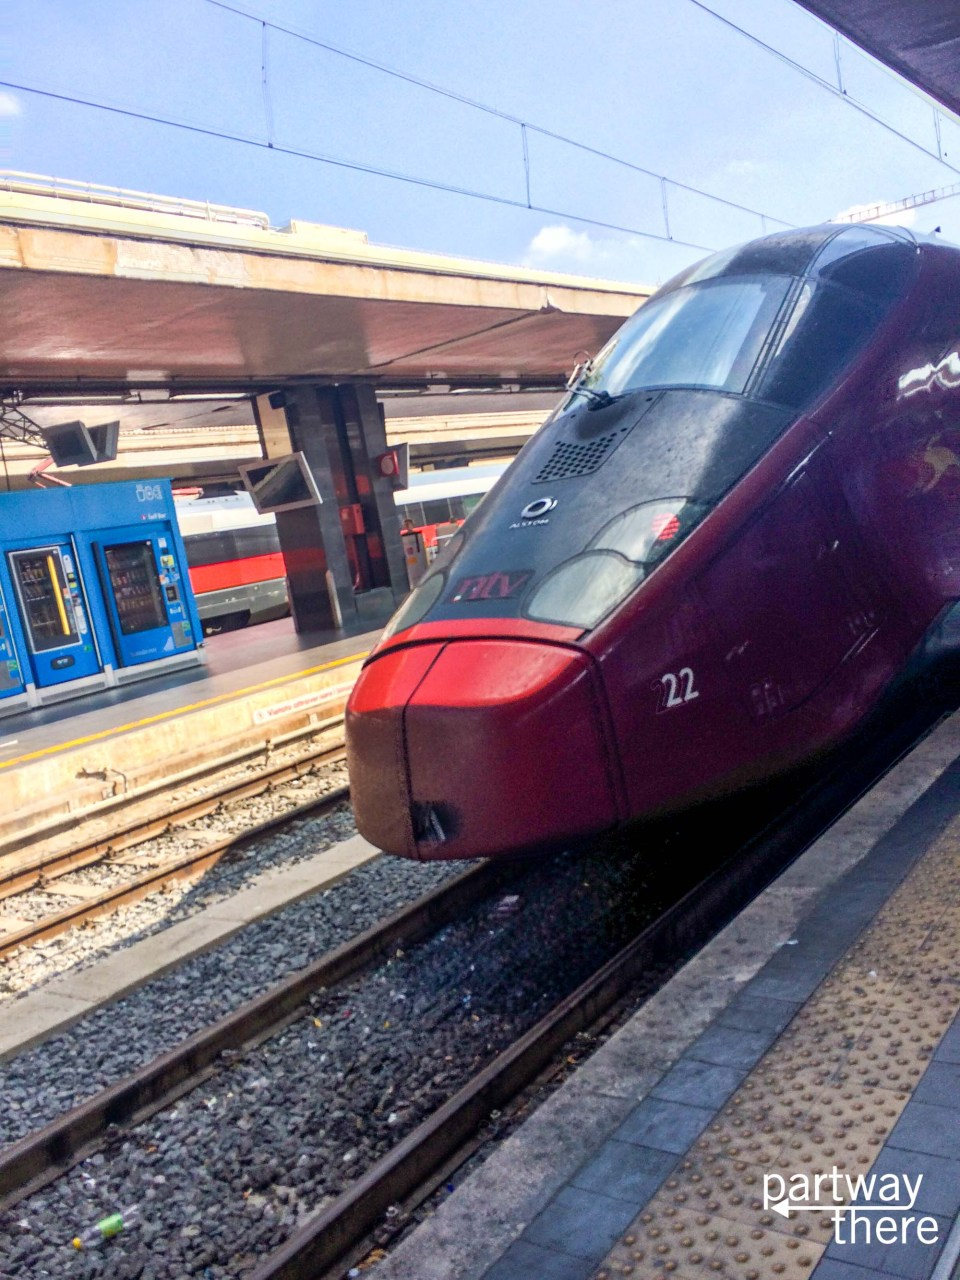 The Italo train in Italy